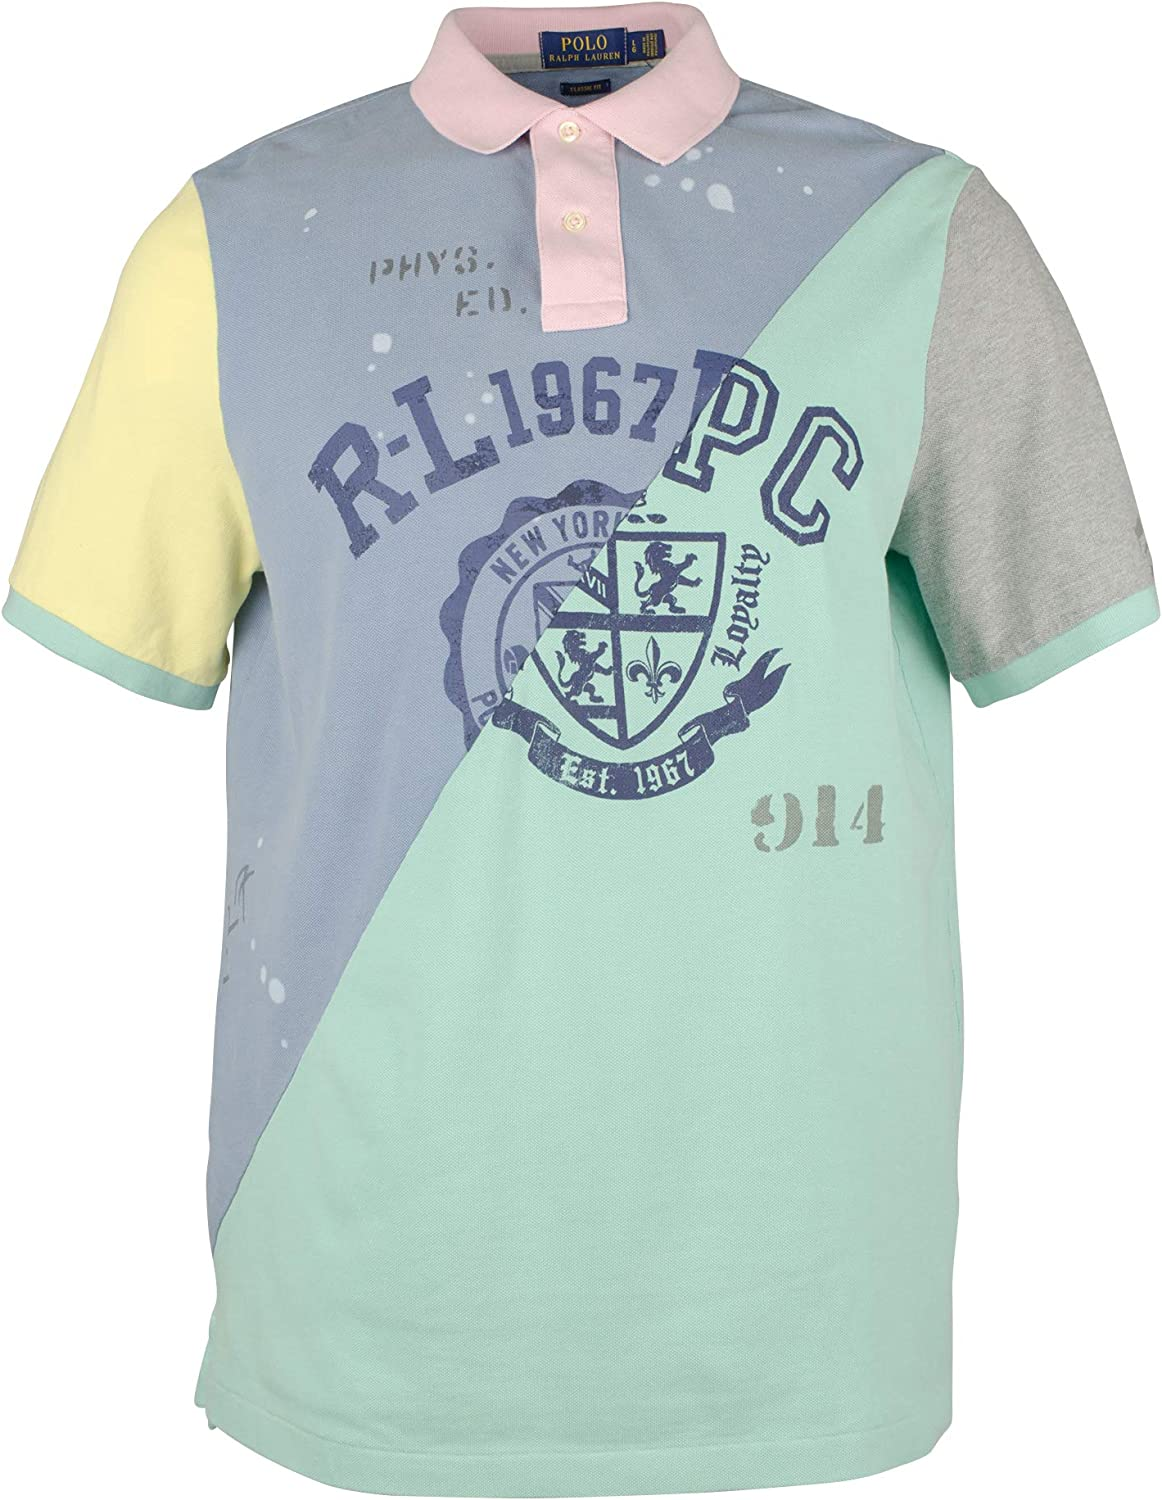 Polo Ralph Lauren Mens Graphic Patchwork Polo Shirt